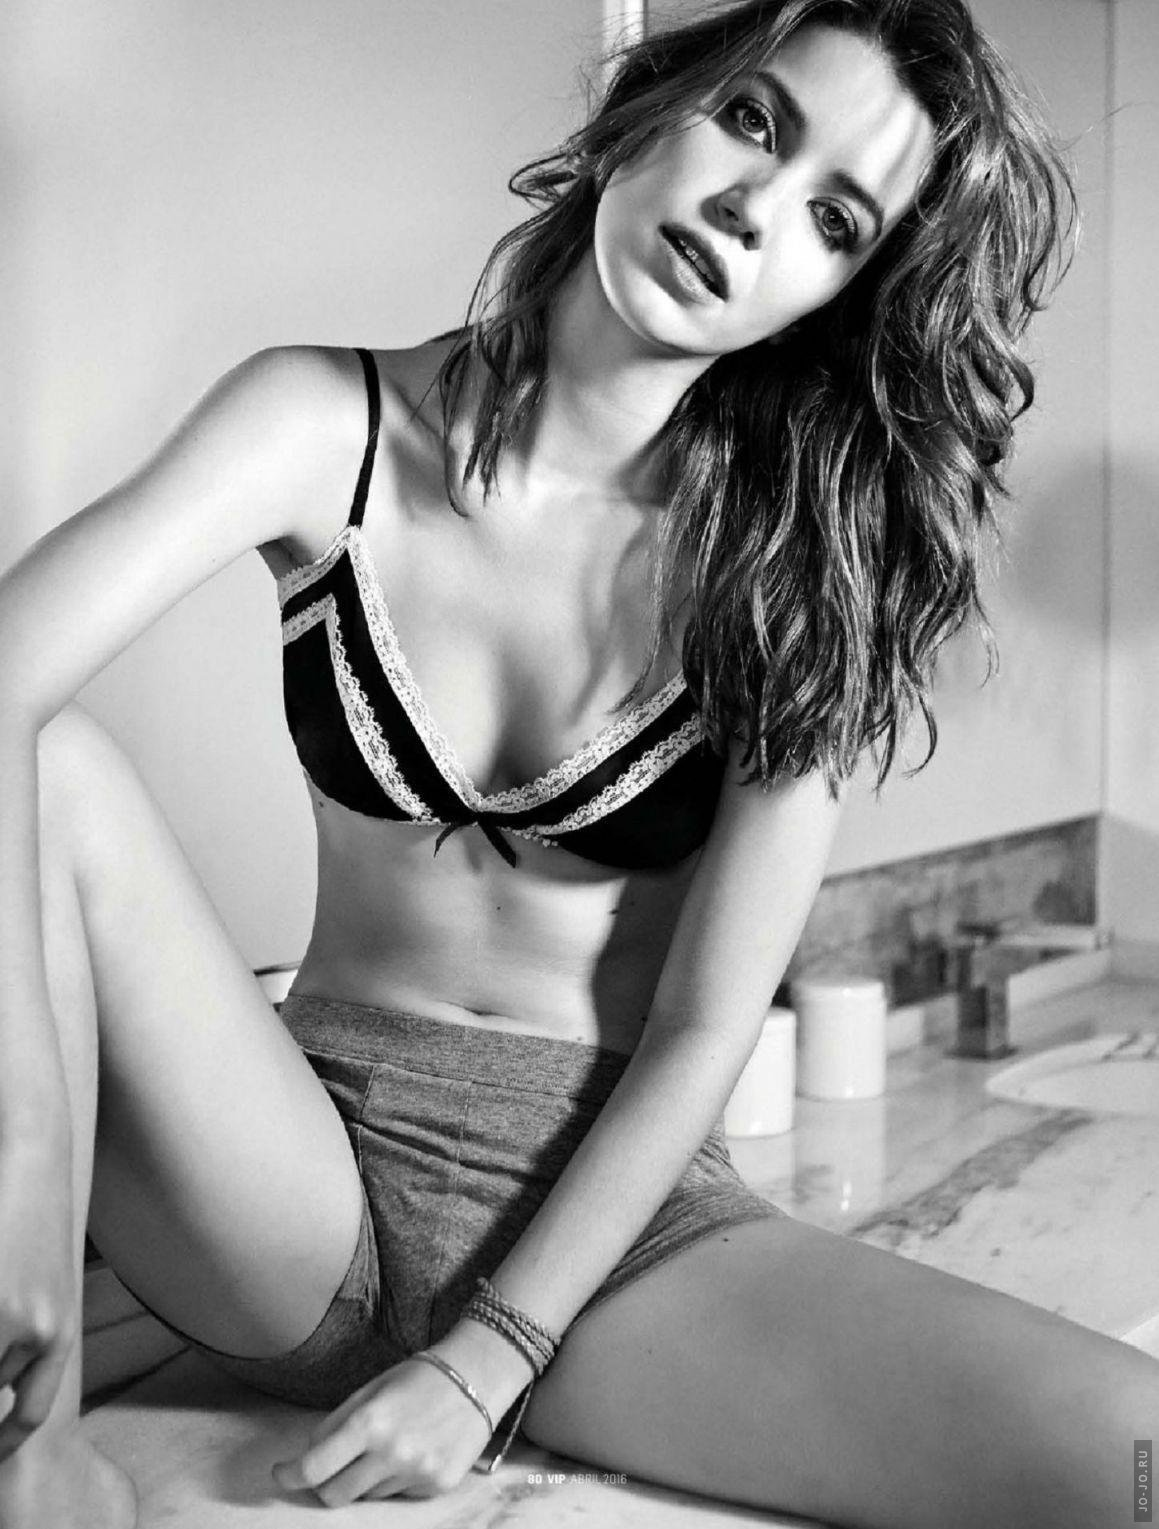 Nathalia Dill - VIP Issue 373 April 2016 Brazil